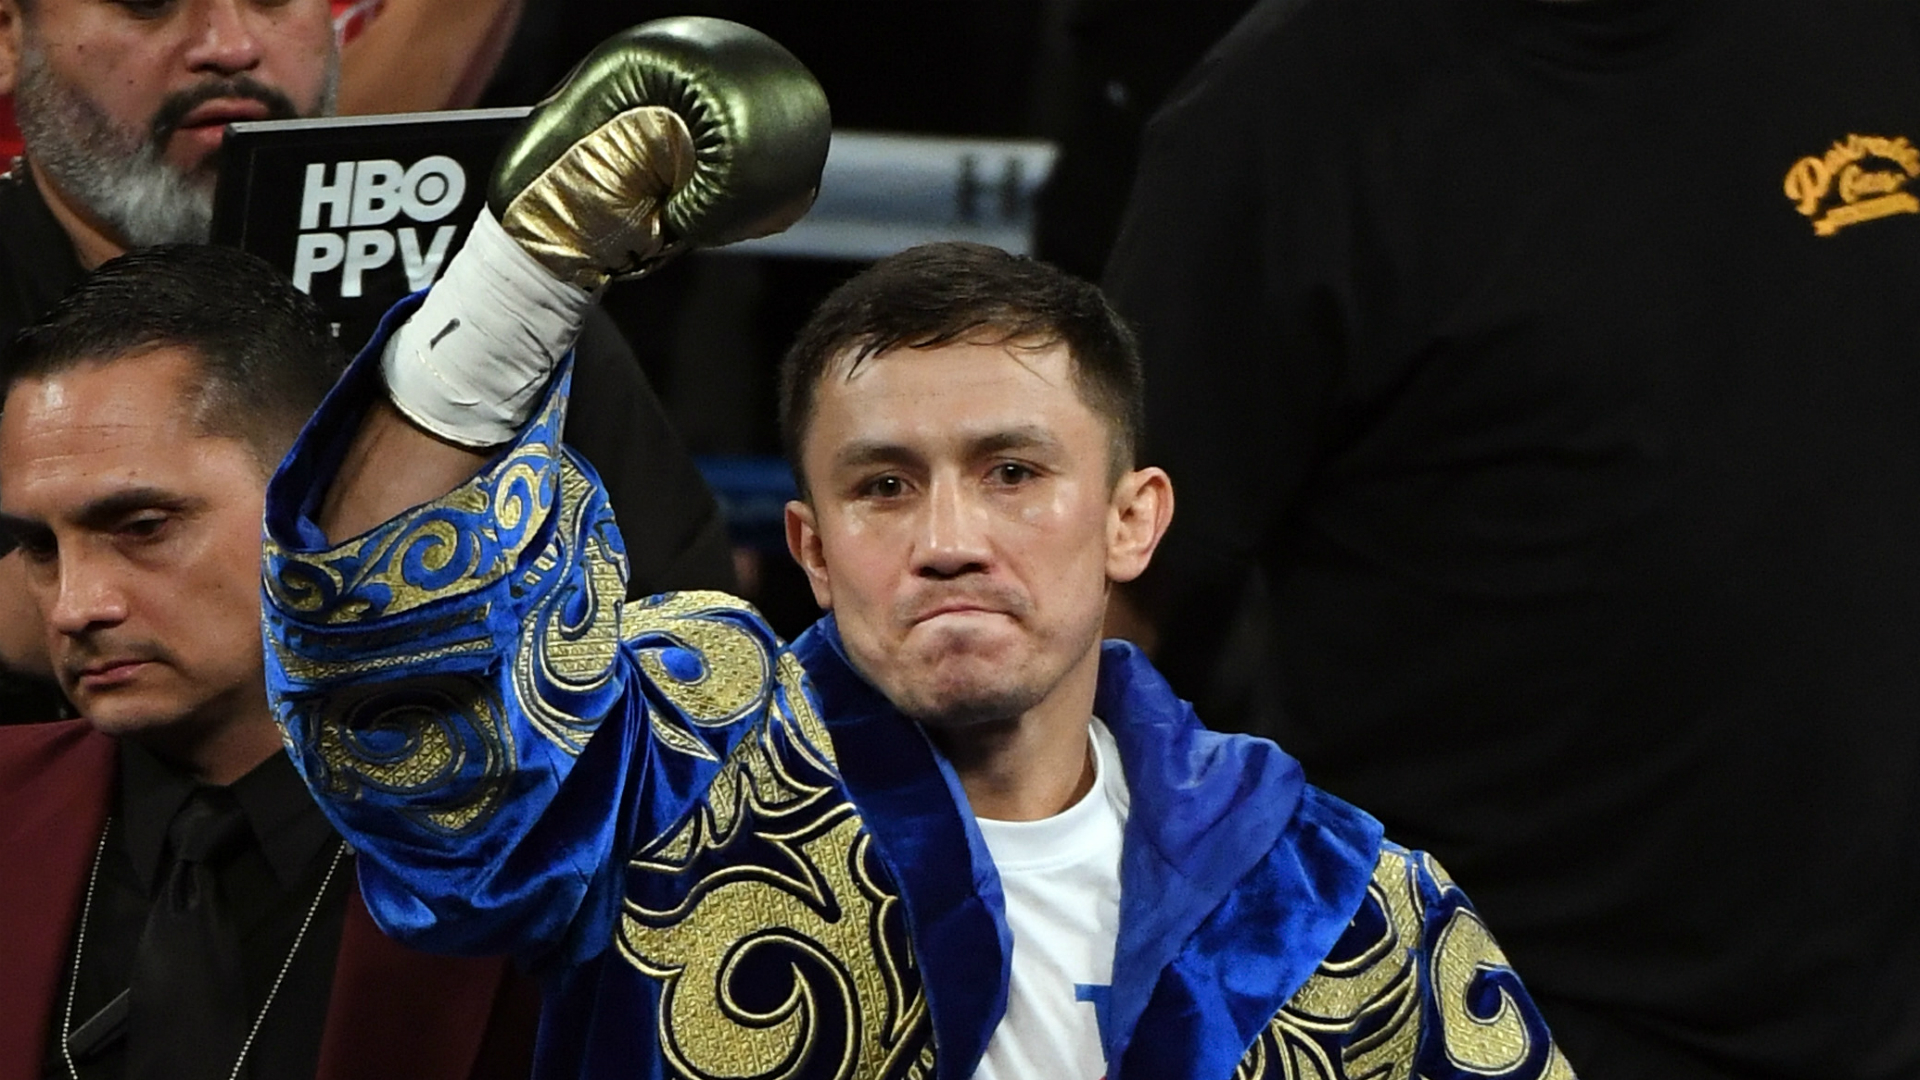 Gennady Golovkin ties record in devastating second-round KO against Vanes Martirosyan